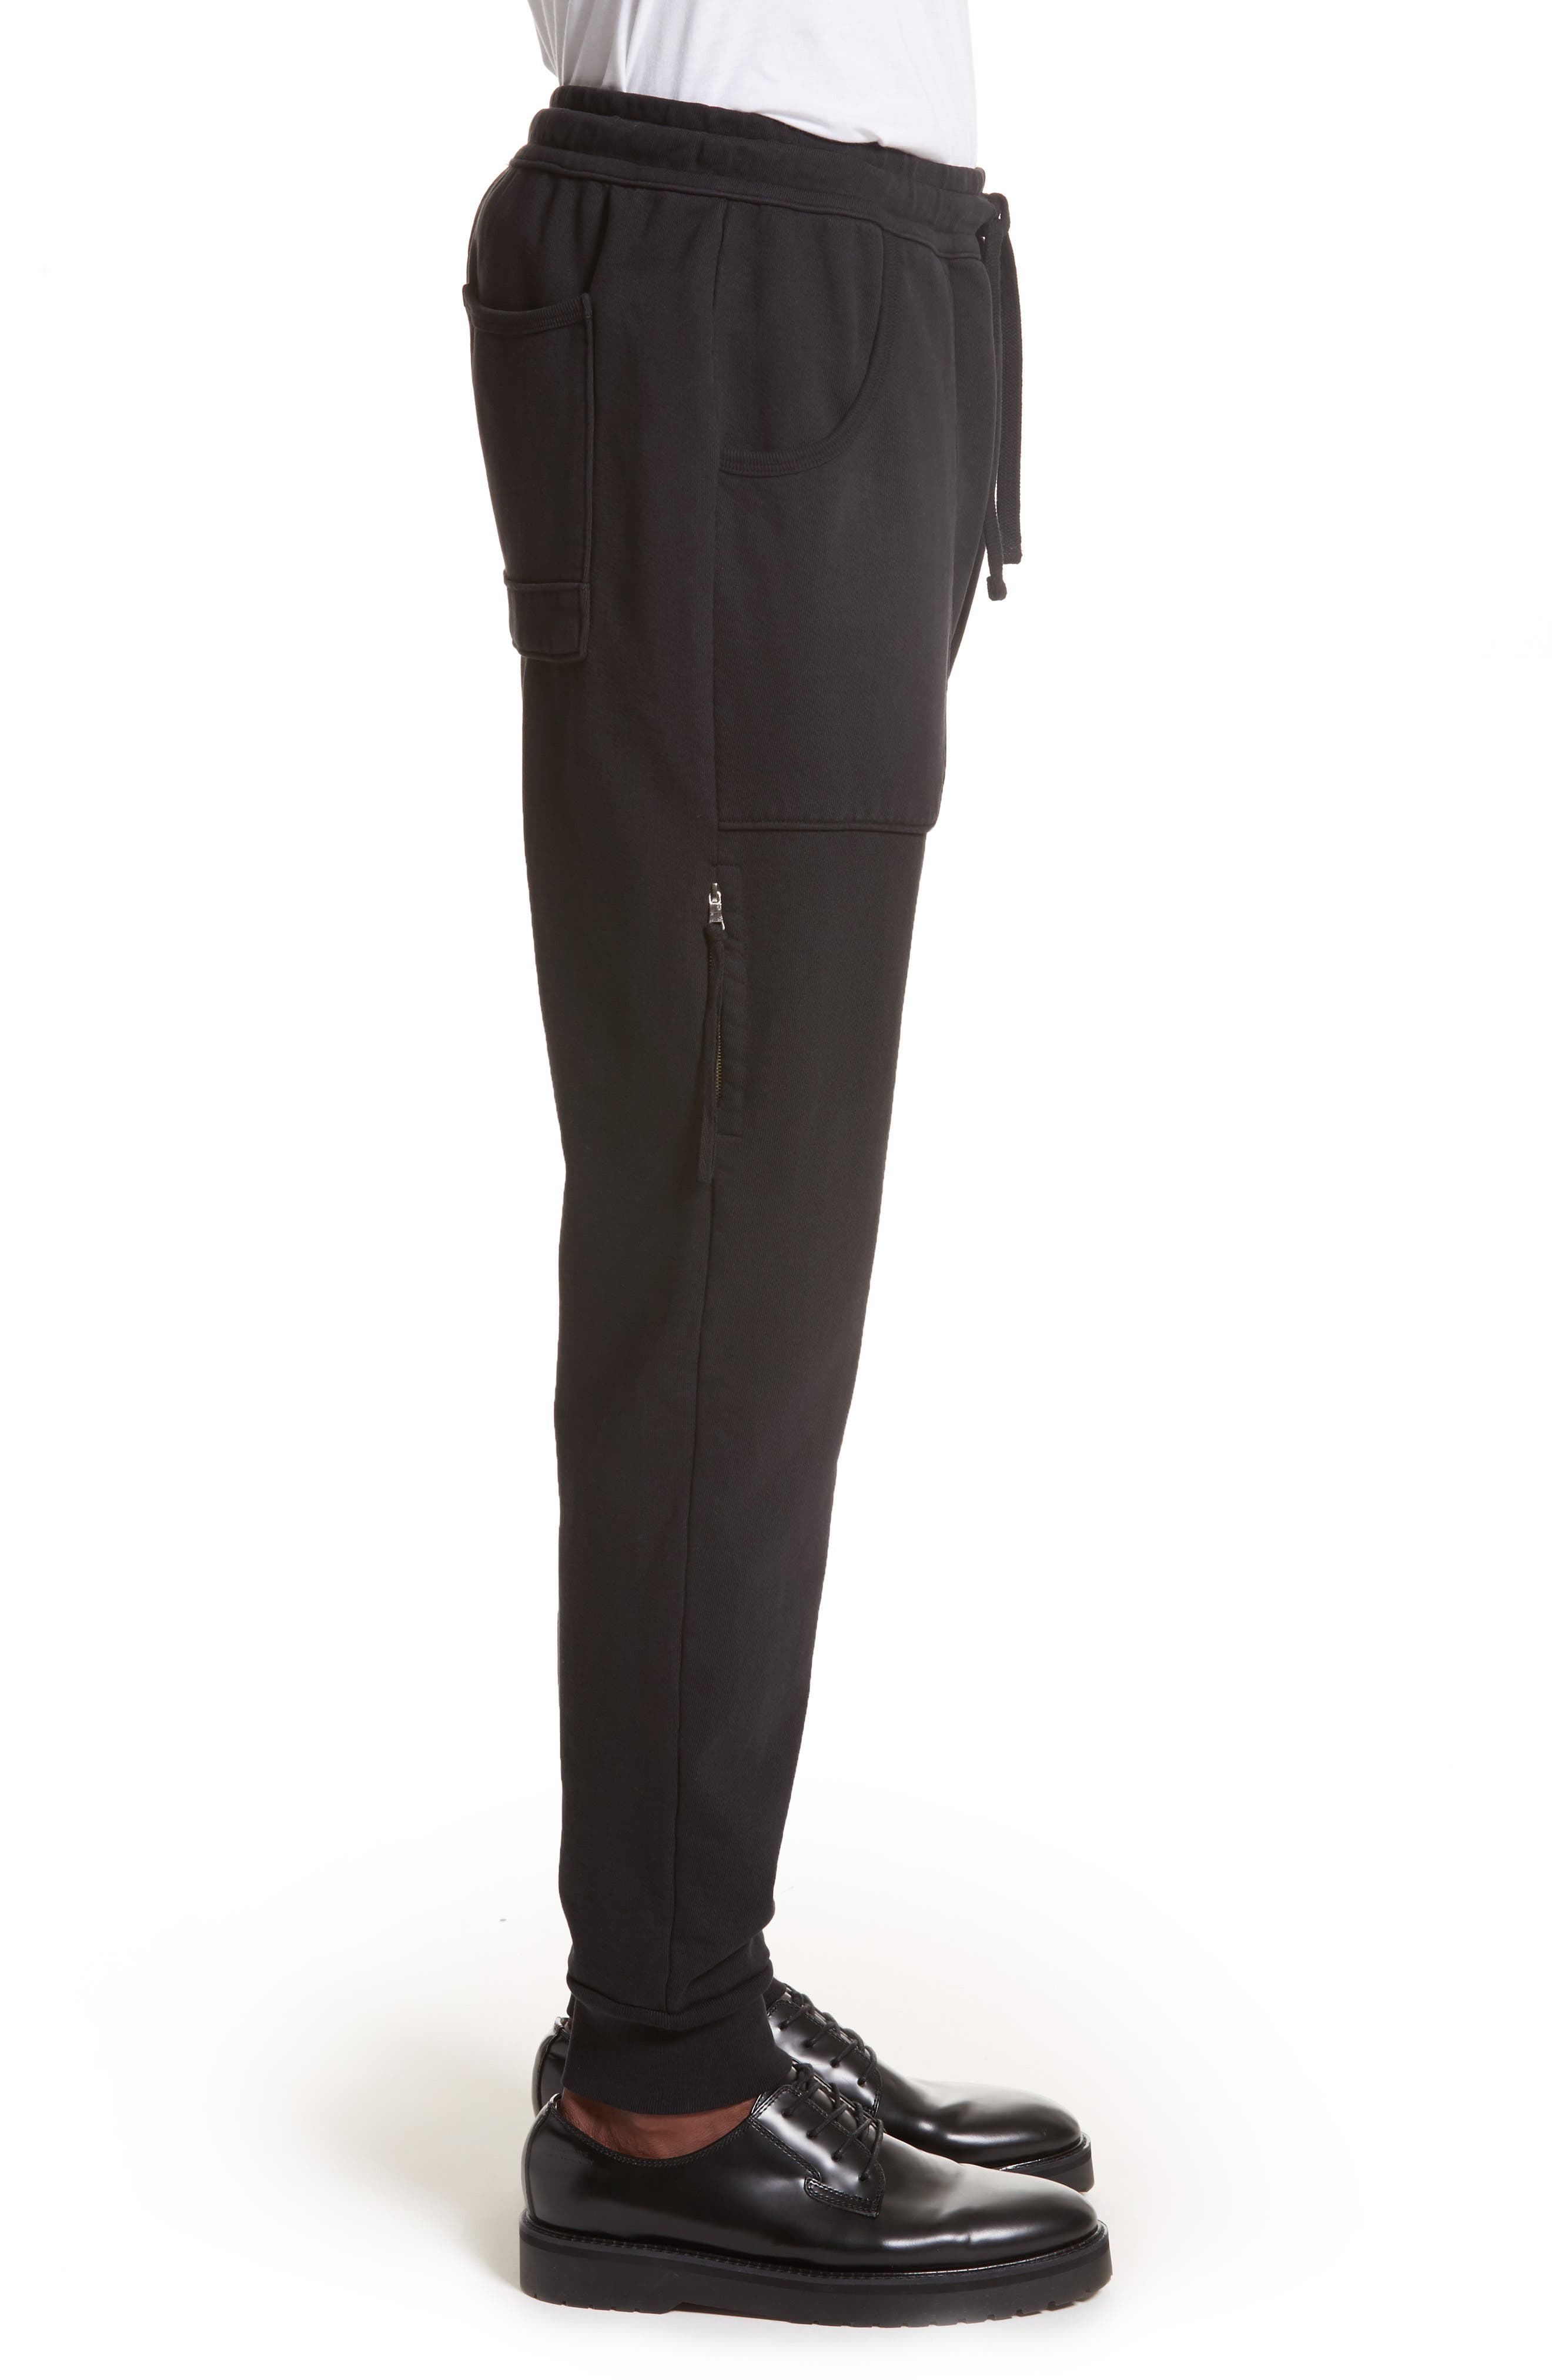 Muldoom Cargo Jogger Pants,                             Alternate thumbnail 7, color,